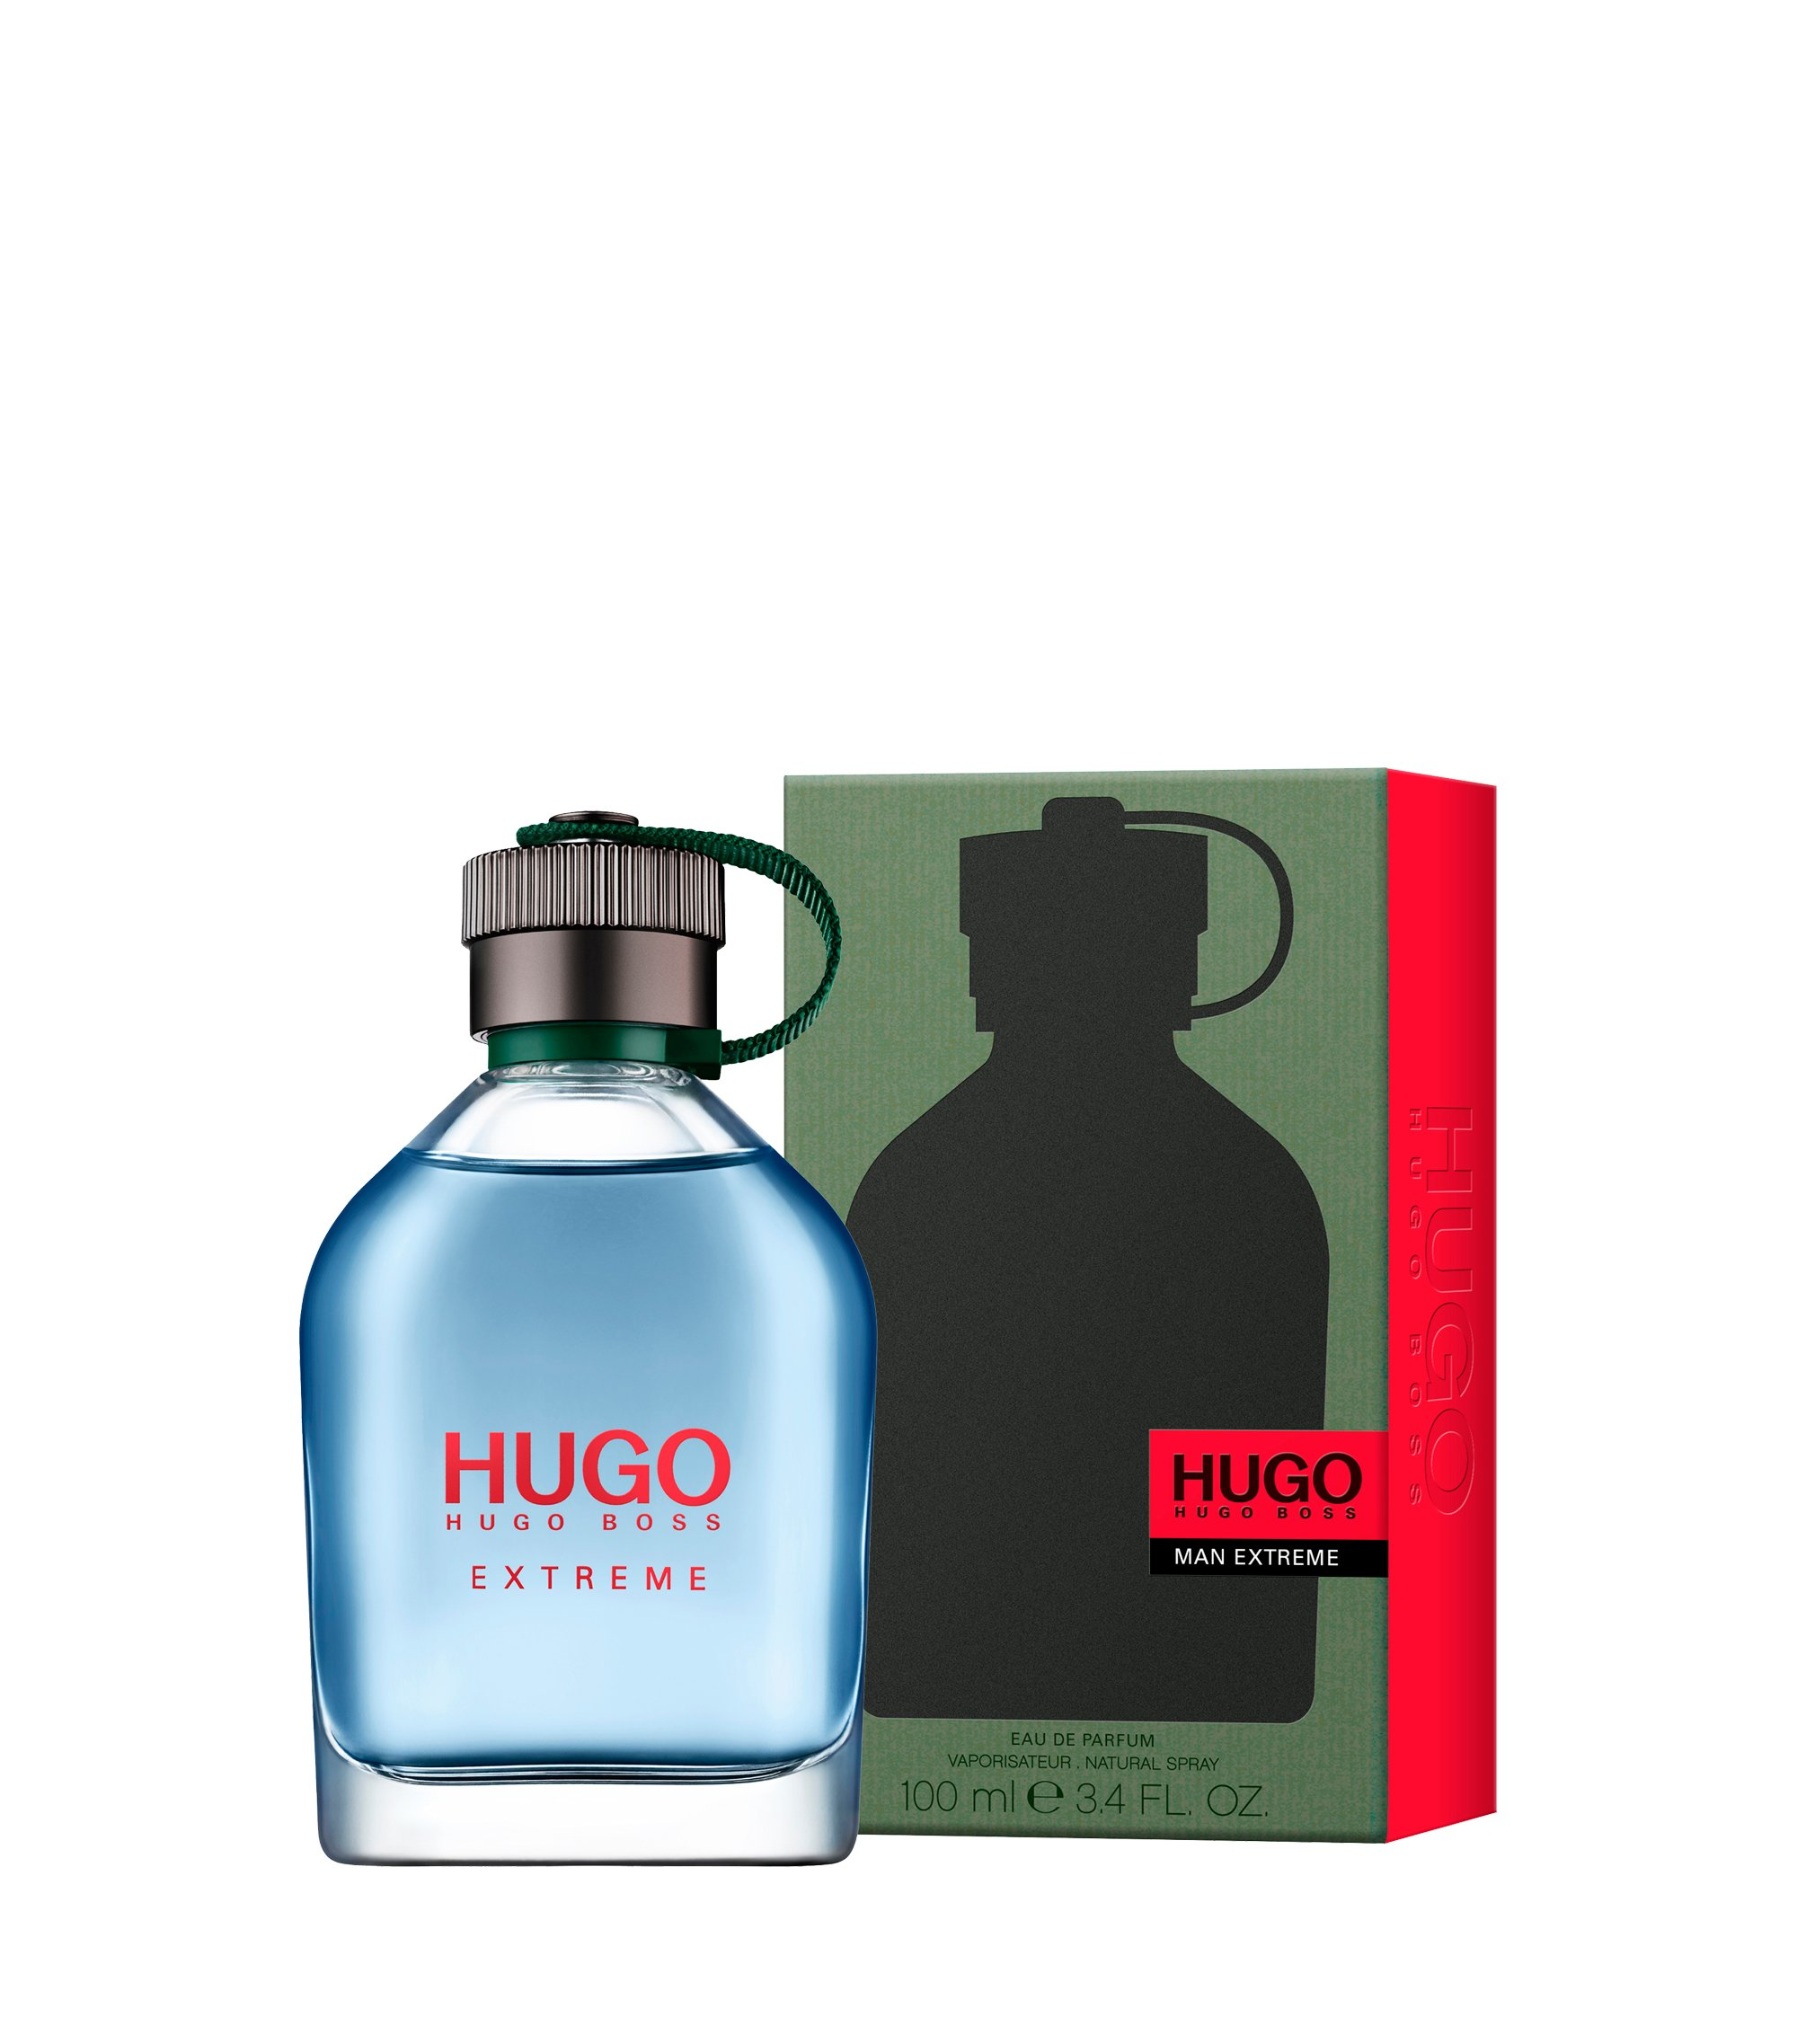 Eau de Parfum HUGO Man Extreme, 100 ml, Assorted-Pre-Pack